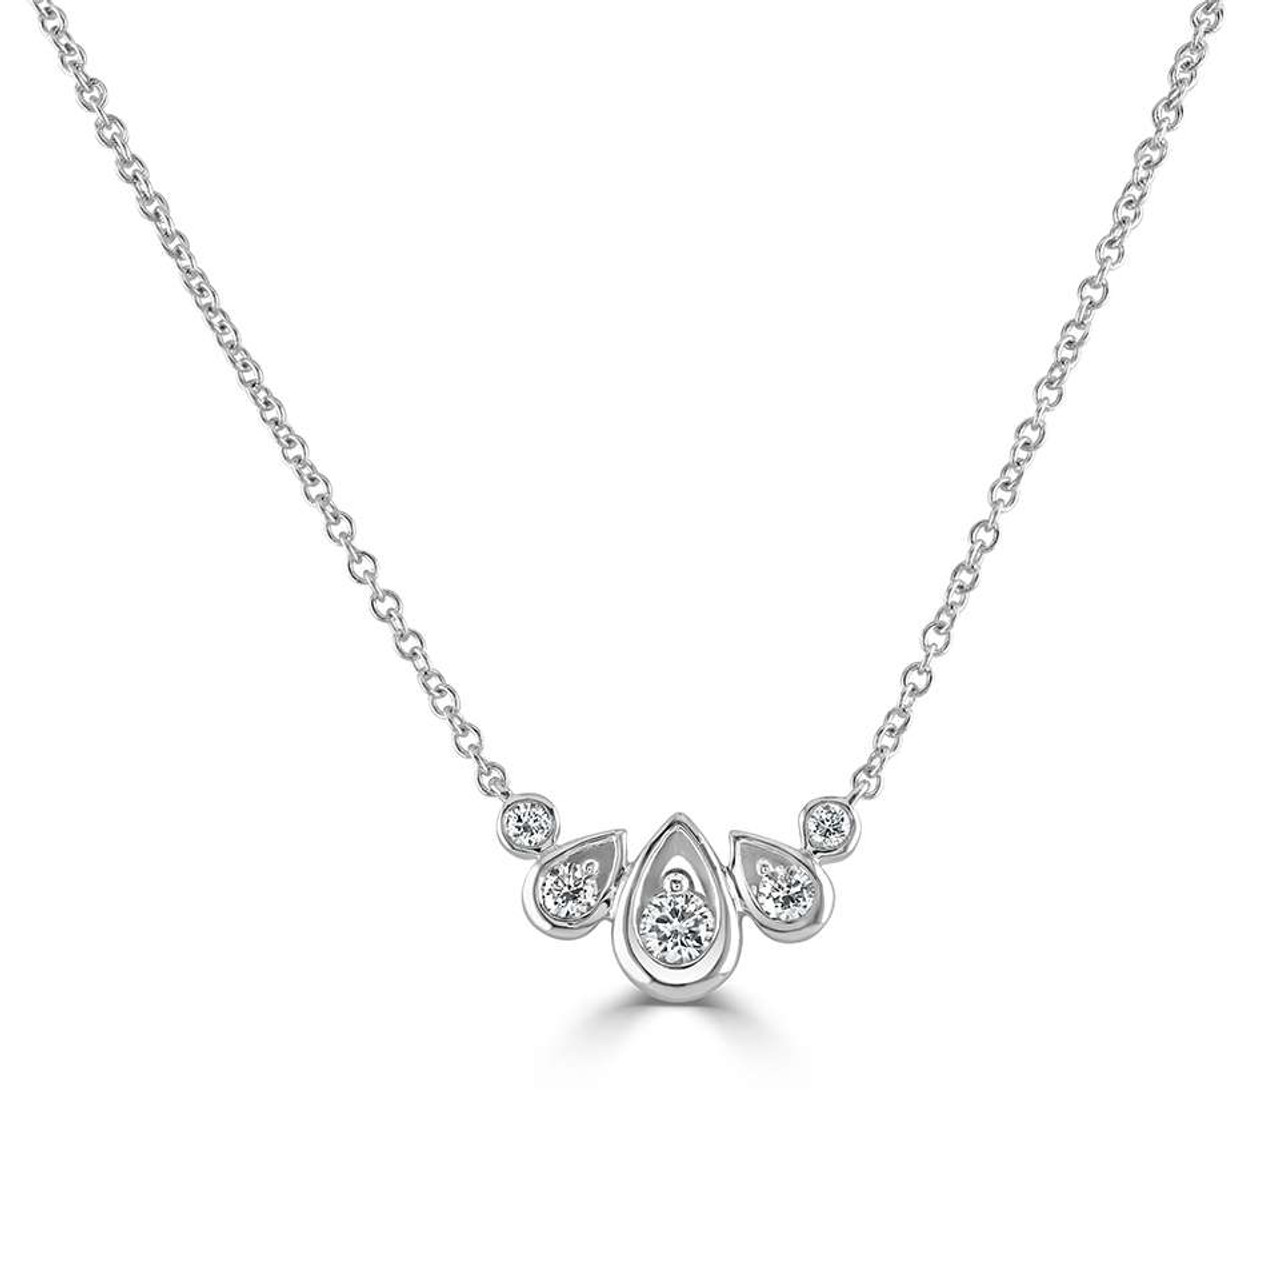 18ct White Gold Diamond Droplet Necklace